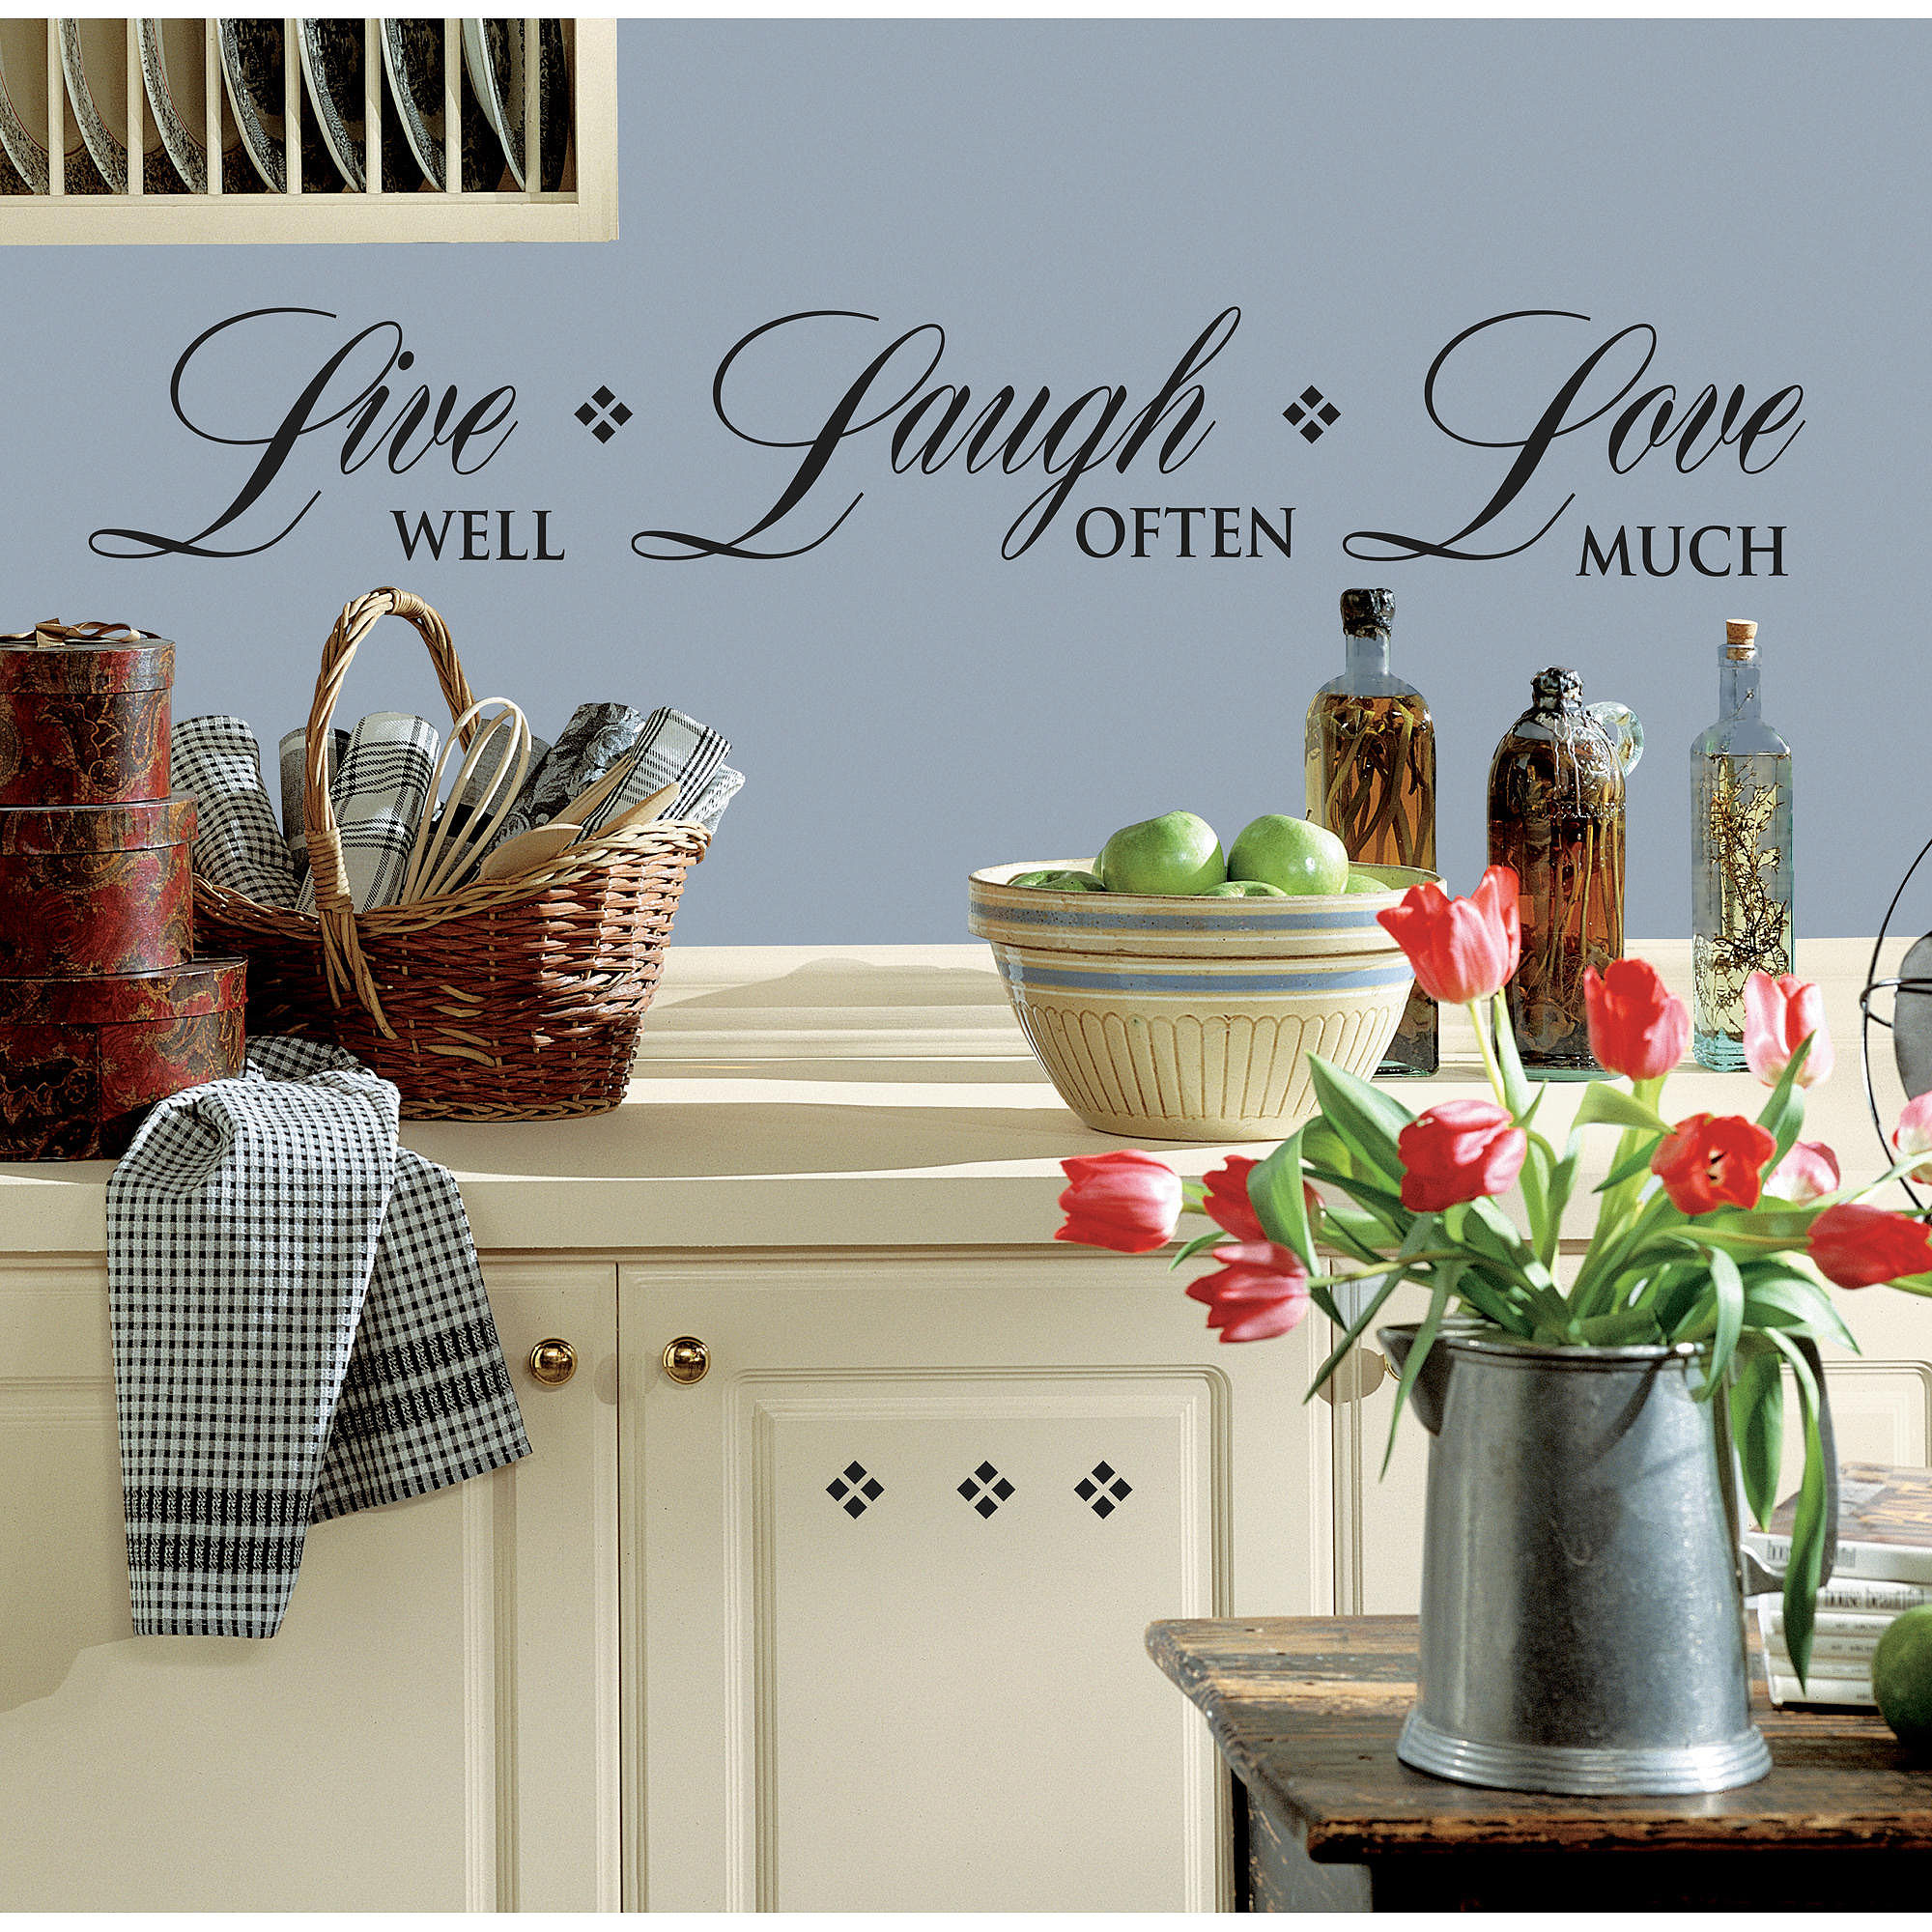 RoomMates Live Well, Laugh Often, Love Much Peel and Stick Wall Decals, Single Sheet